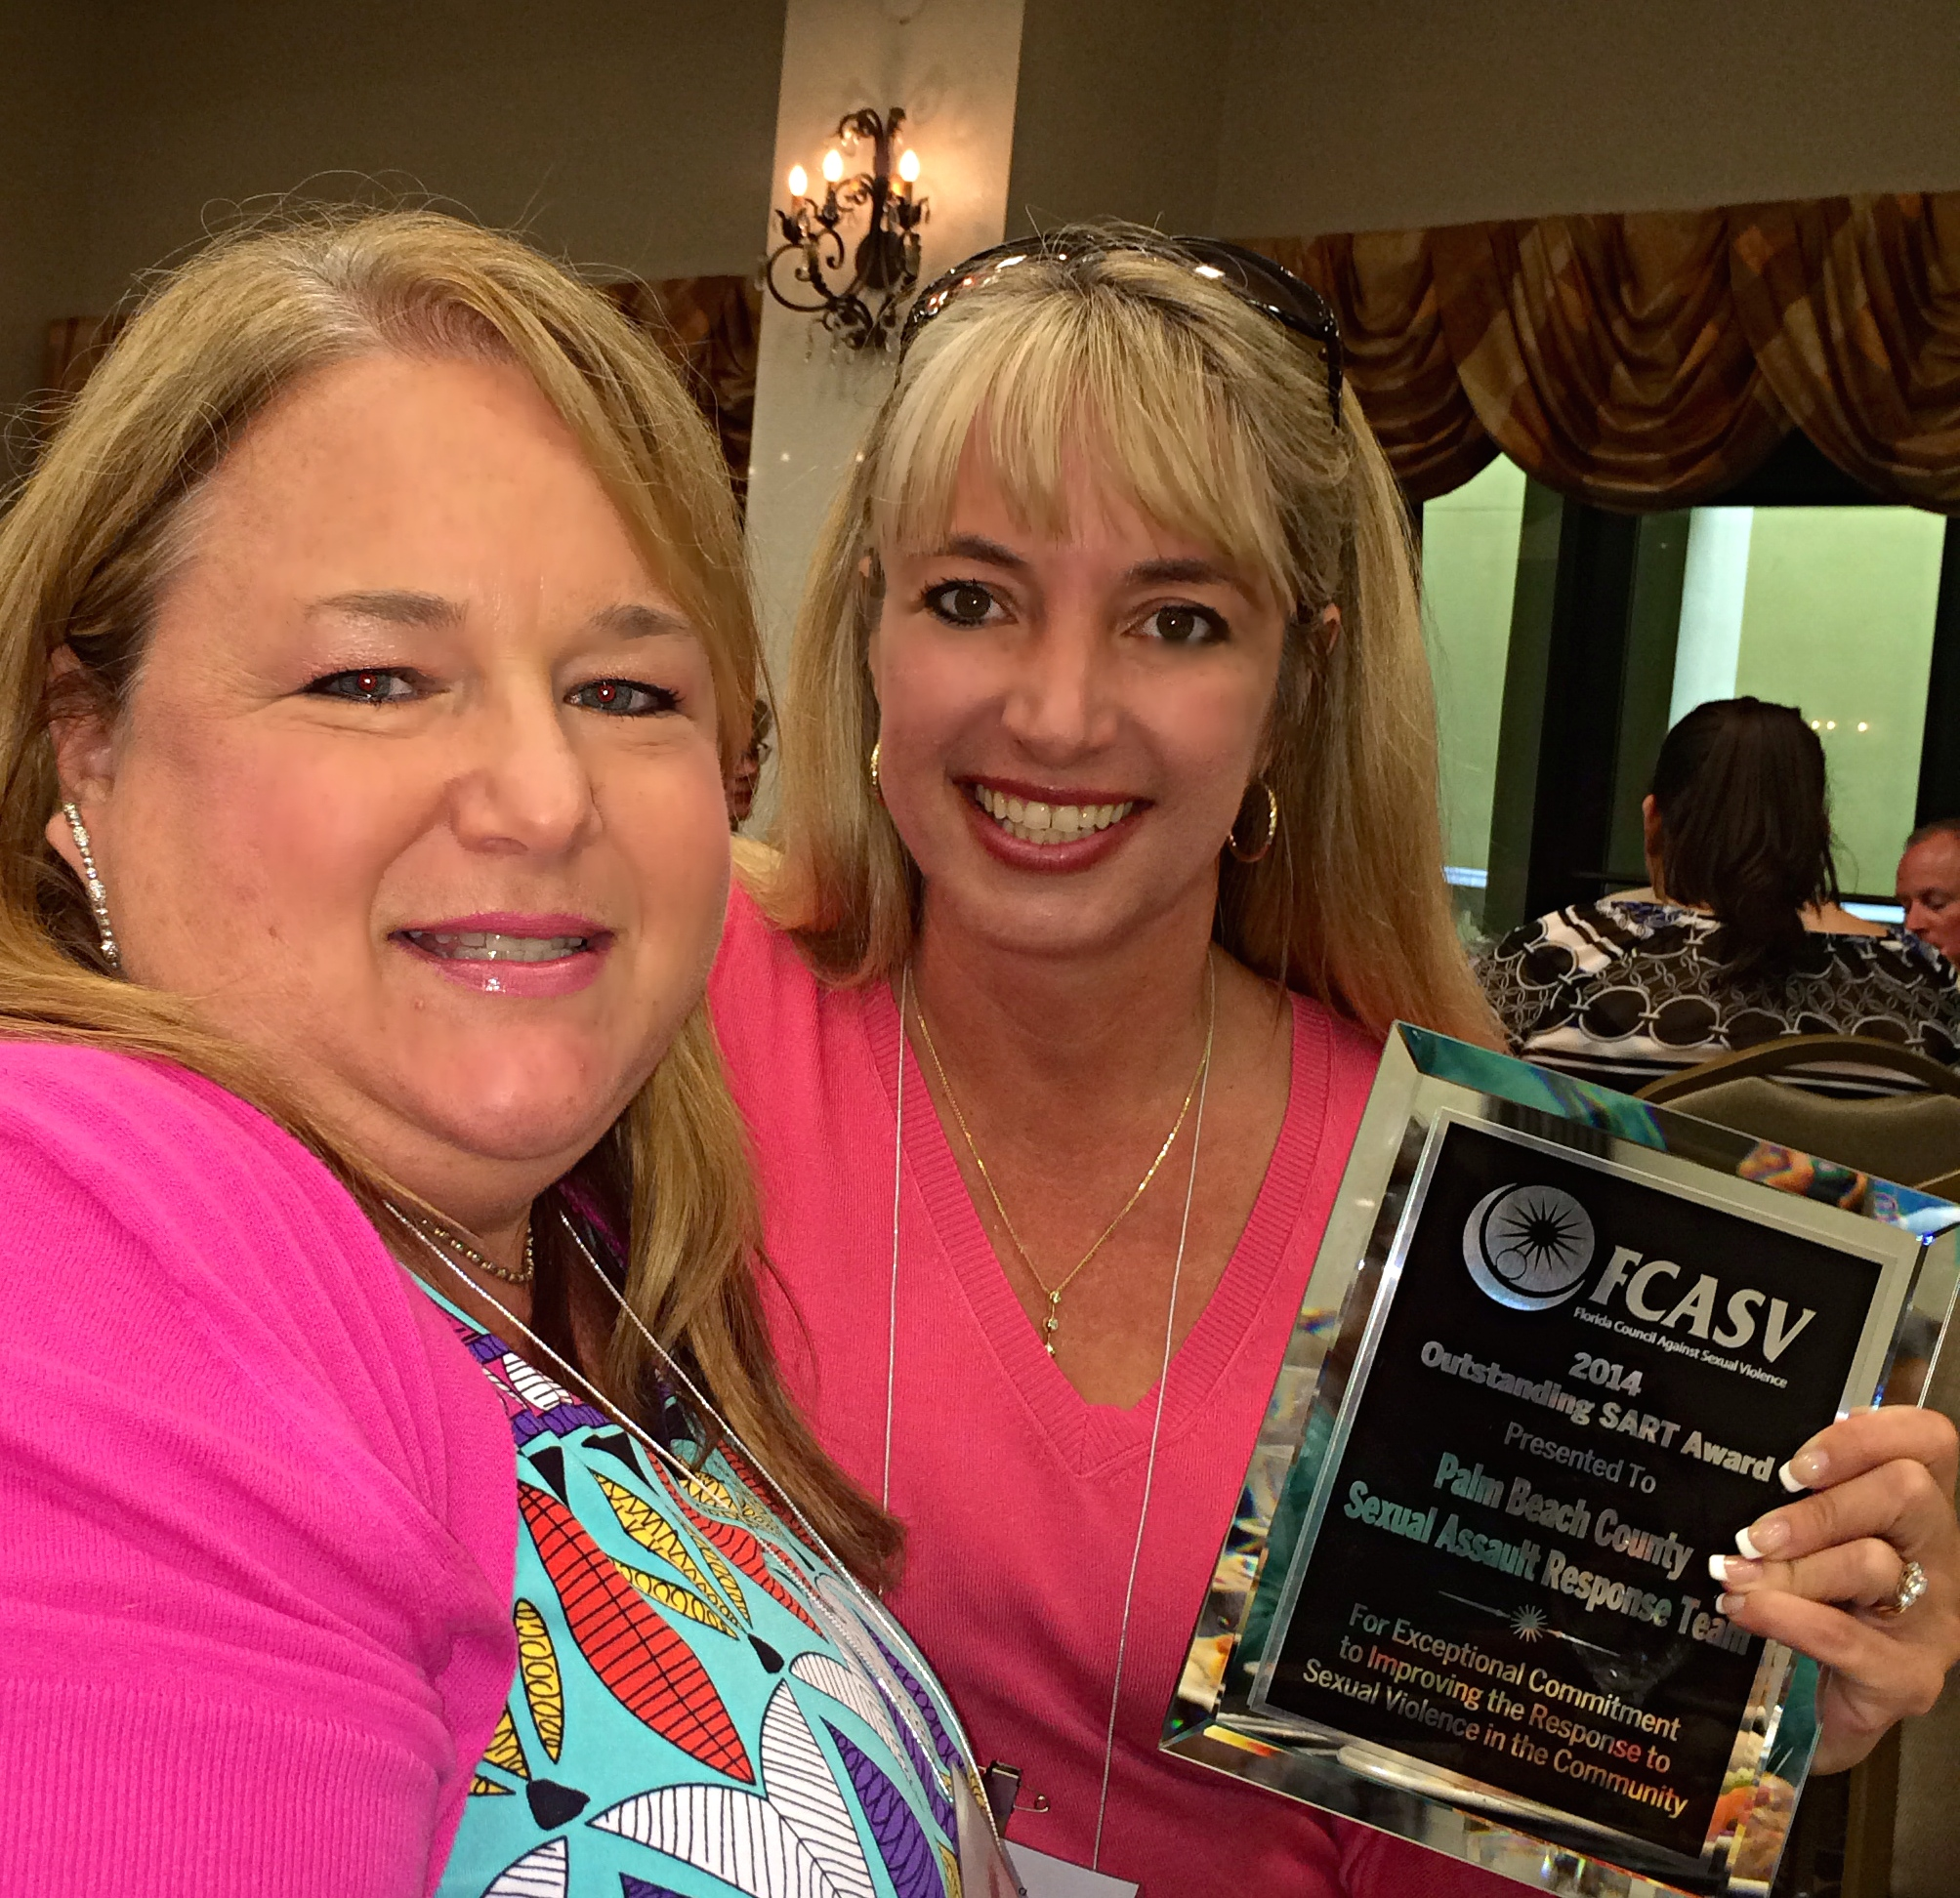 After only 3 years of serving the citizens of Palm Beach County, our Sexual Assault Response Team (SART) received an award for being the best team in the state of Florida.